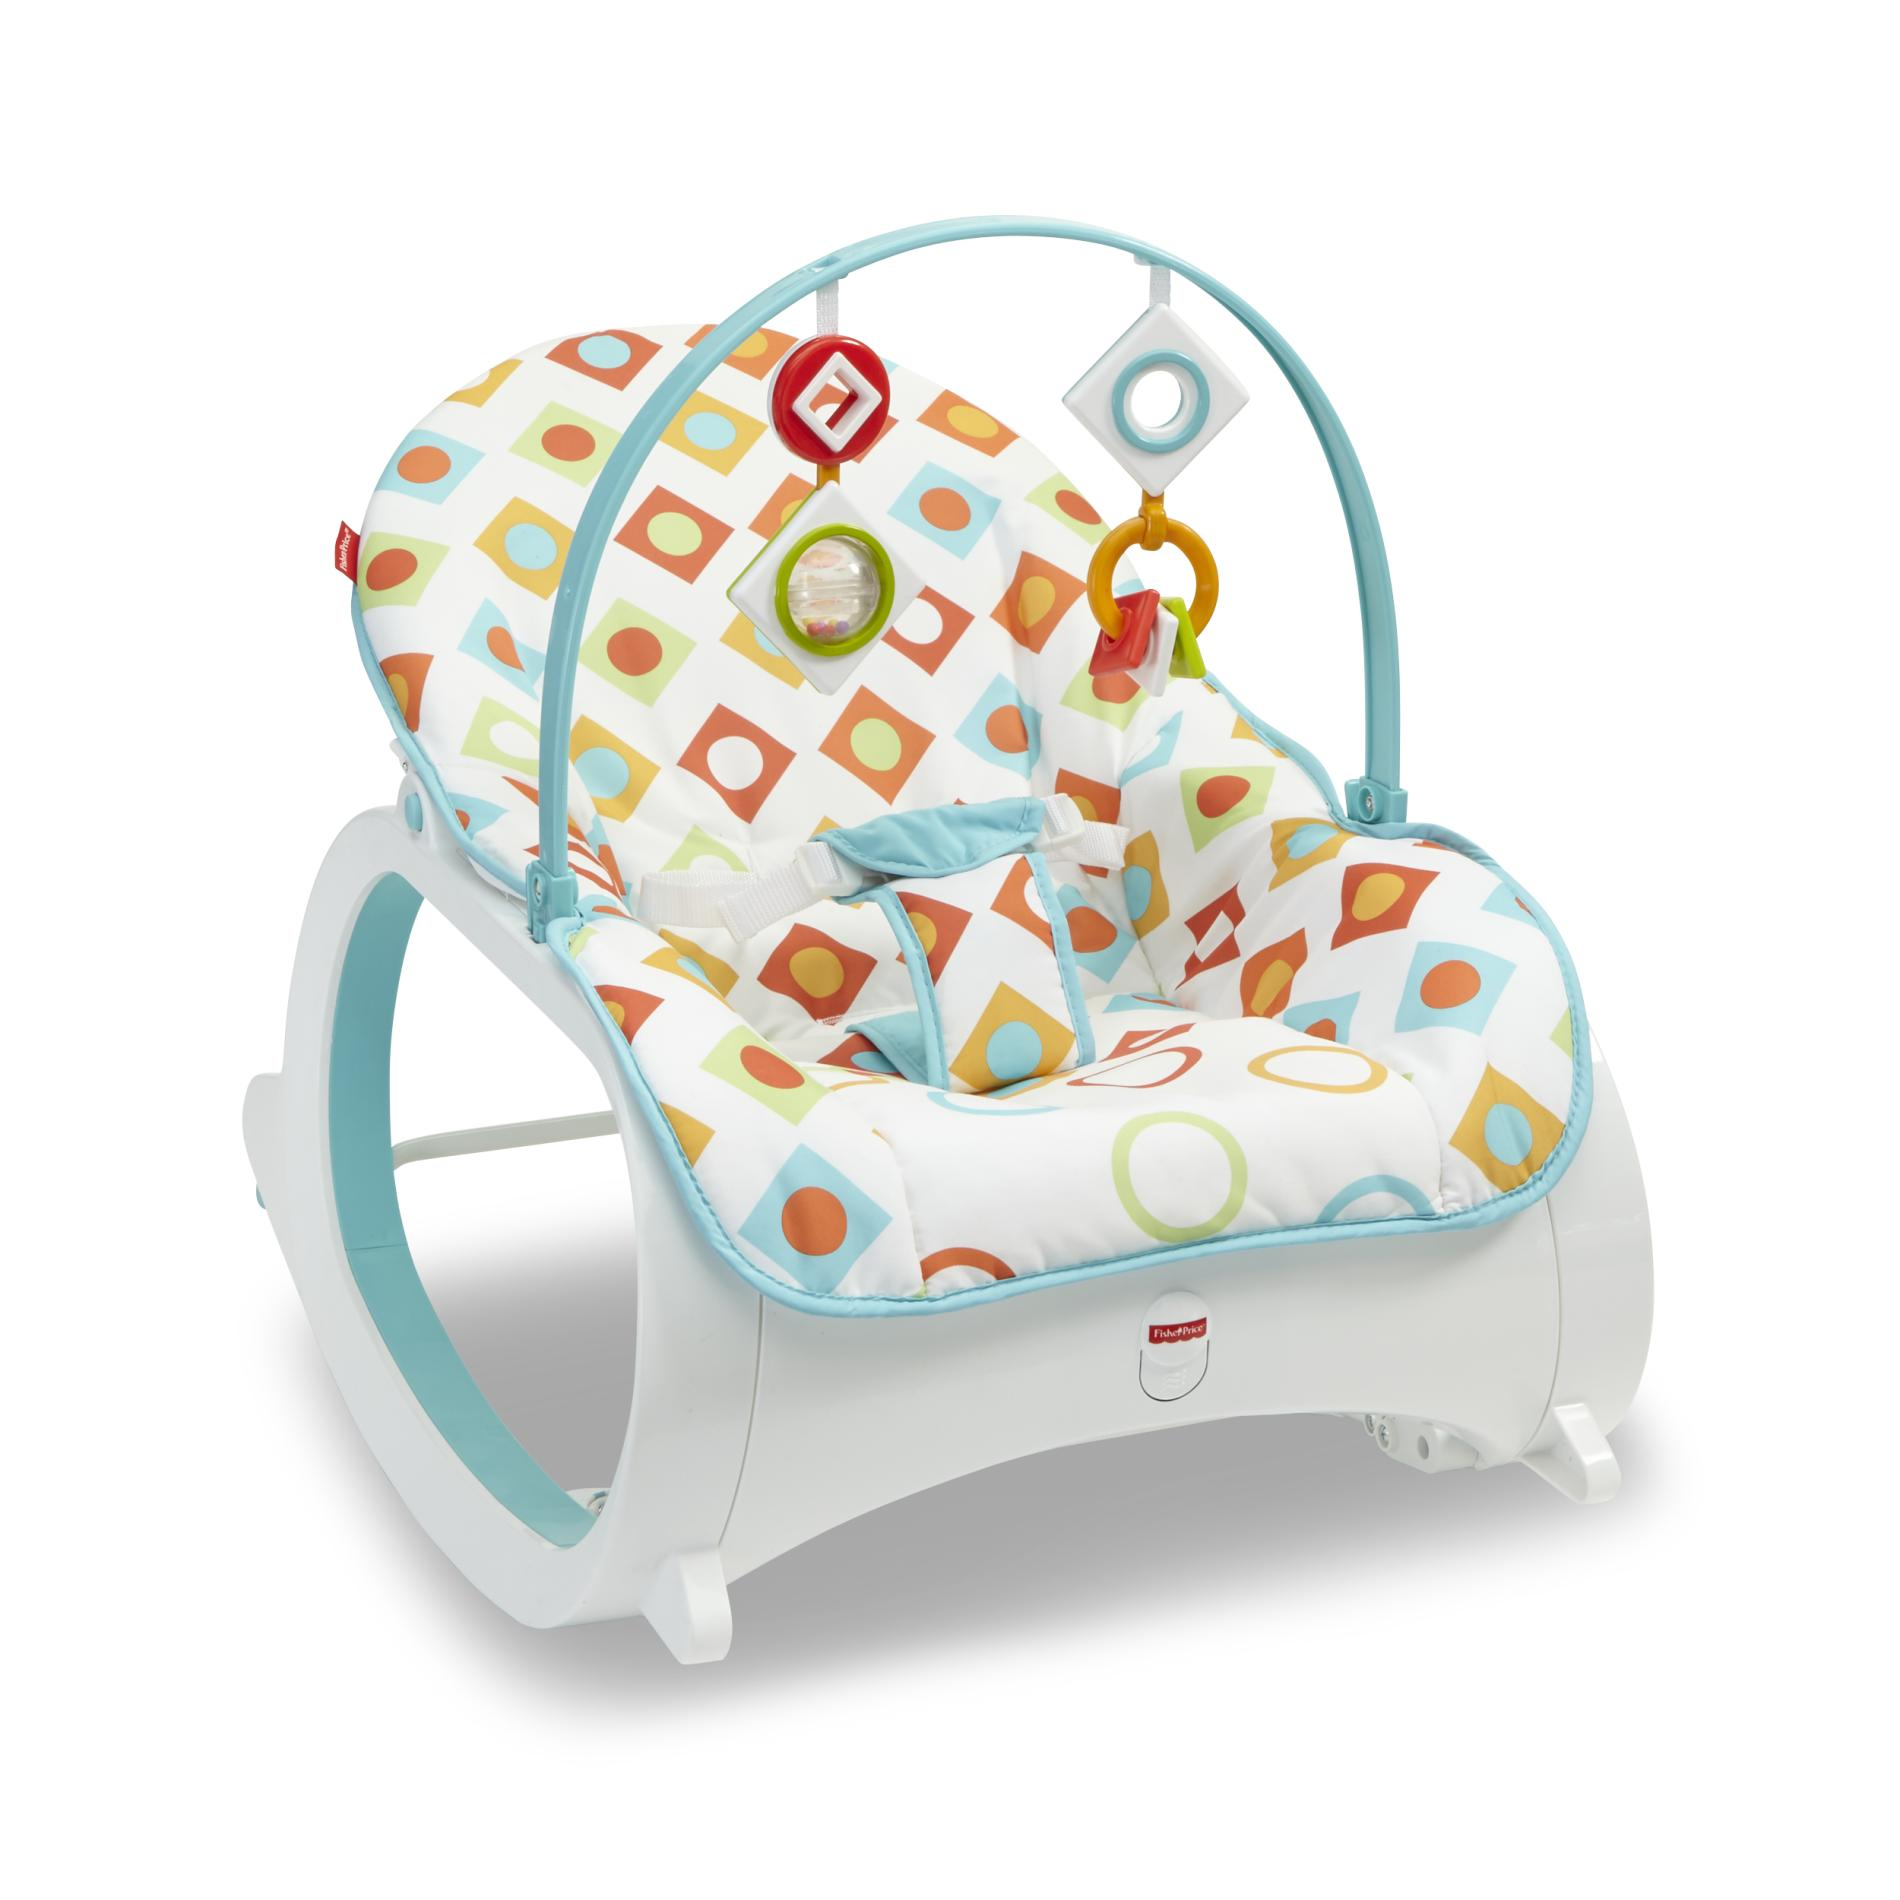 baby chair rocker lace covers for wedding bouncers rockers sears fisher price infant to toddler bouncer seat sleeper swing toy portable